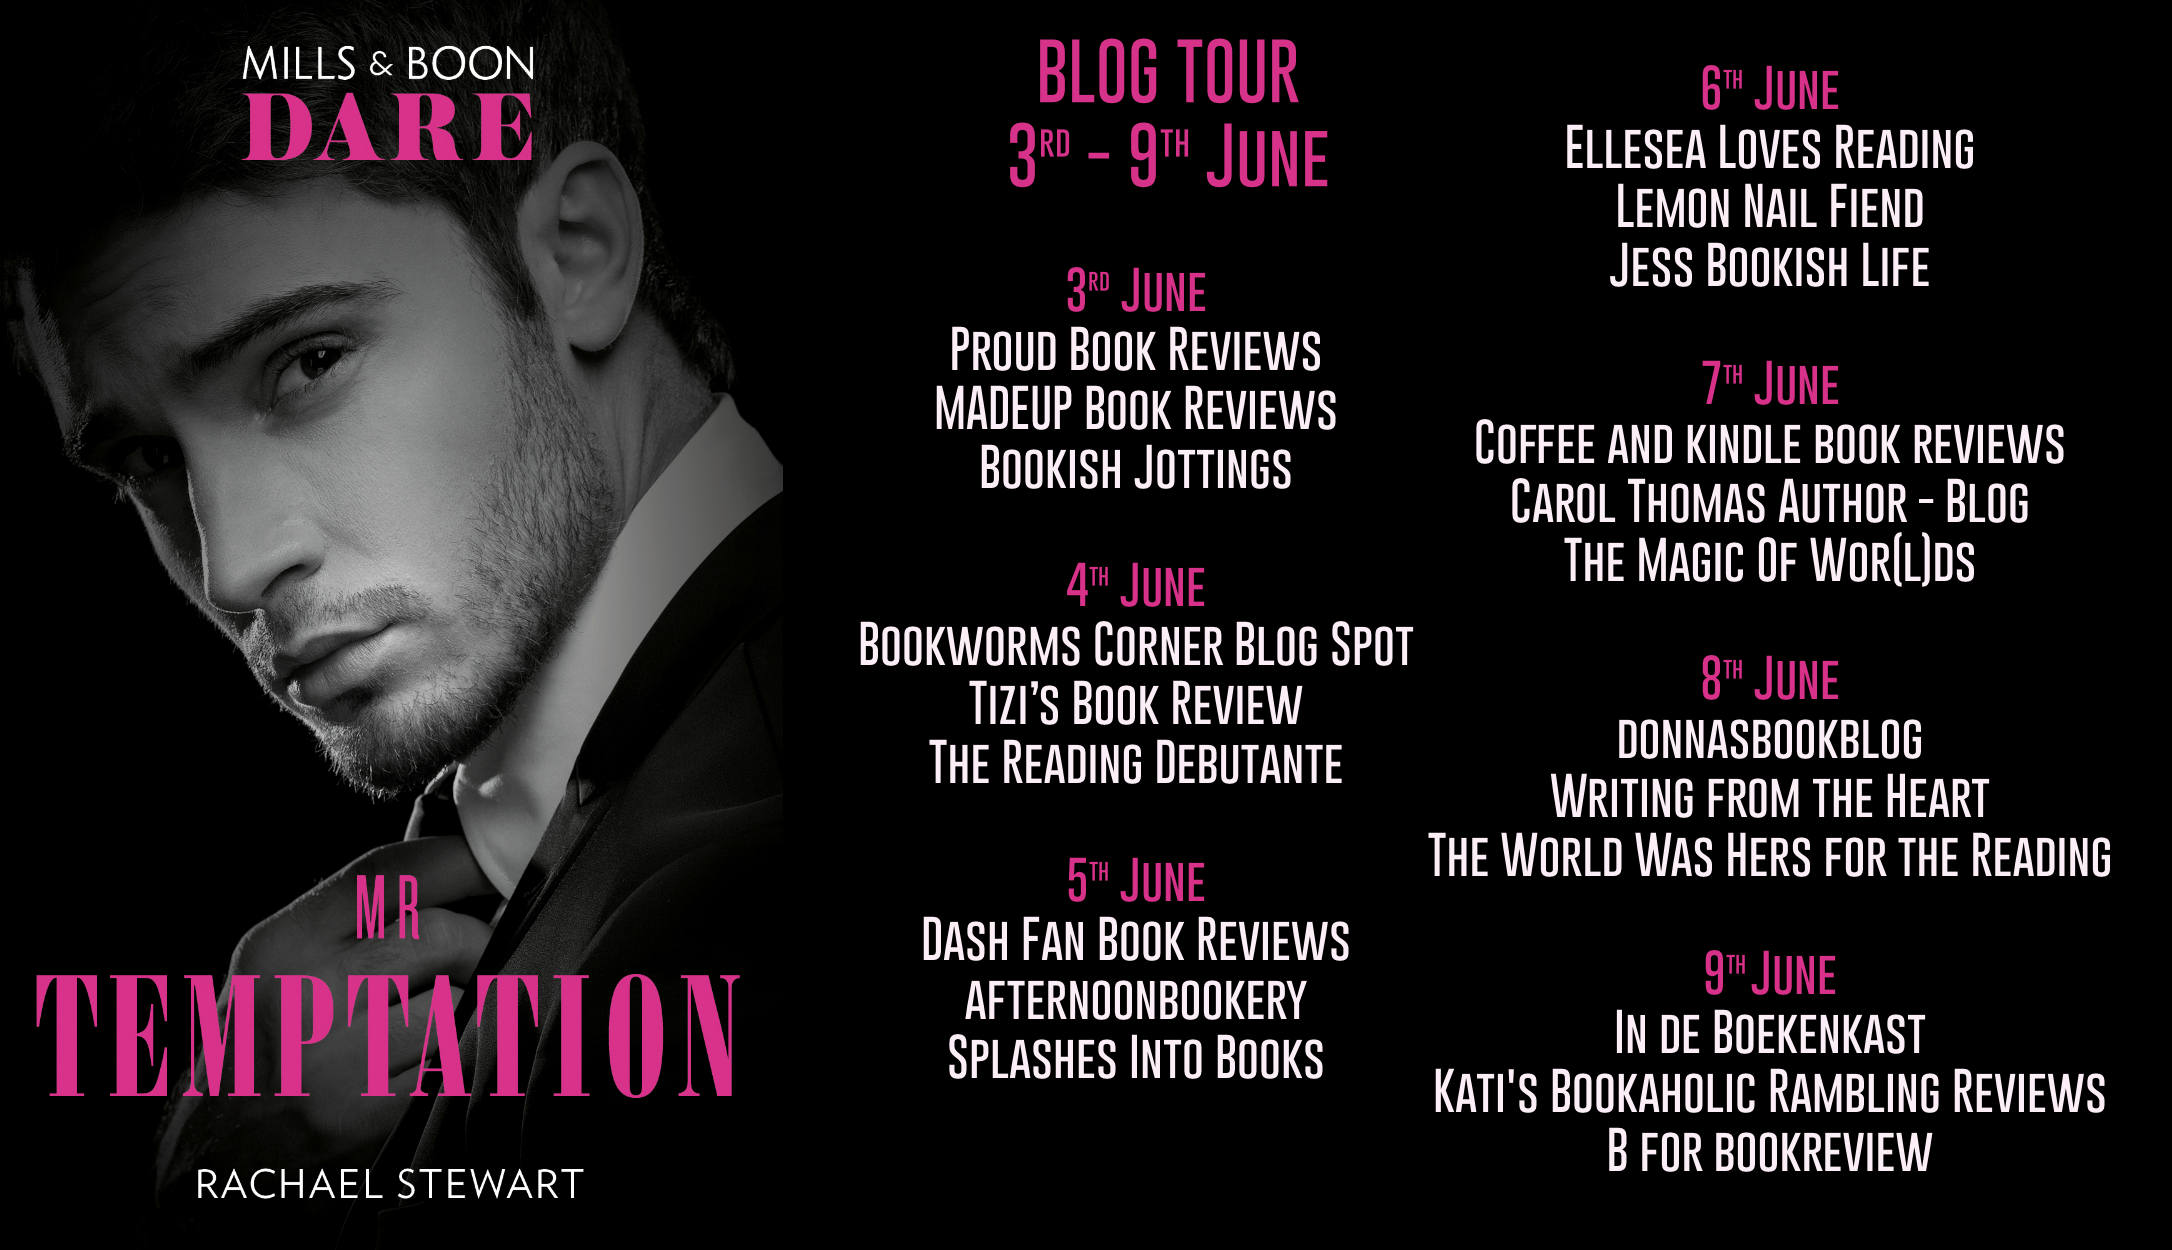 Mr Temptation Blog Tour Dates